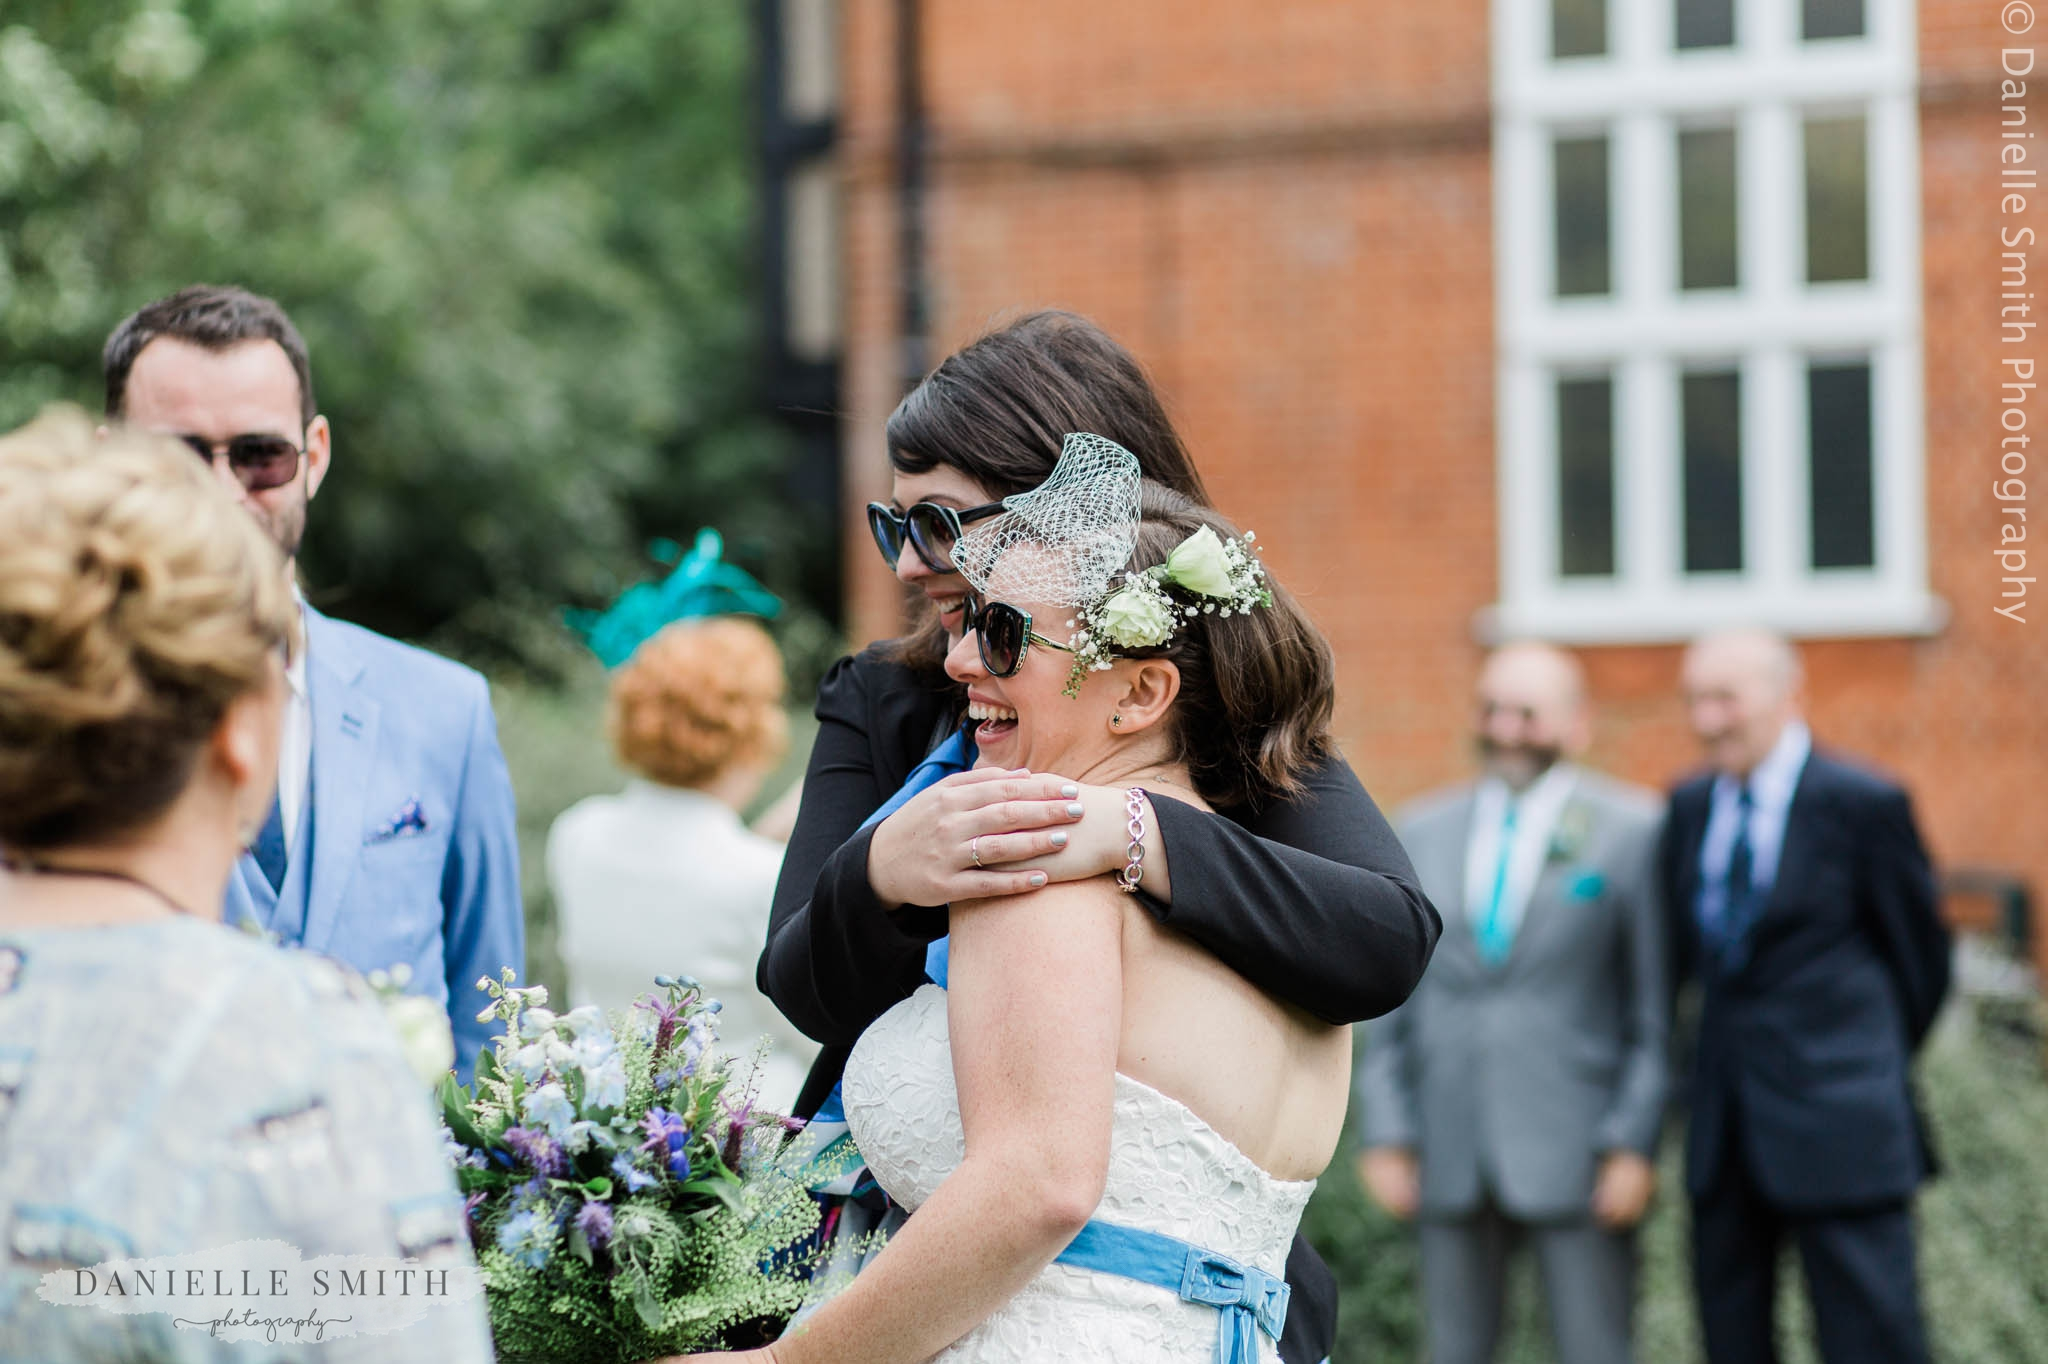 friend hugging the bride - relaxed and fun wedding